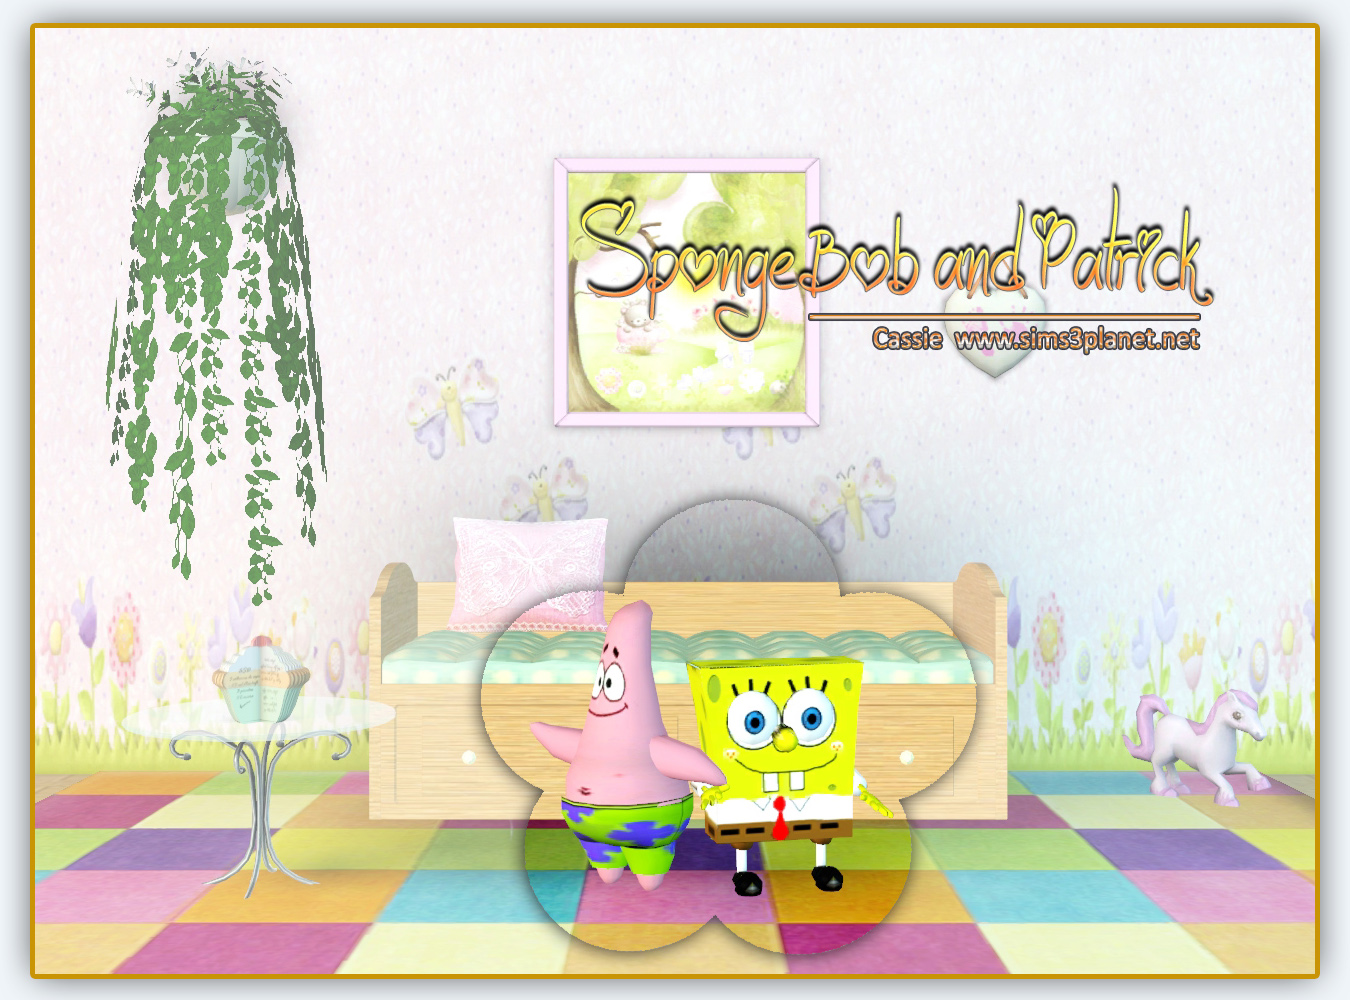 SpongeBob and Patrick by Cassie